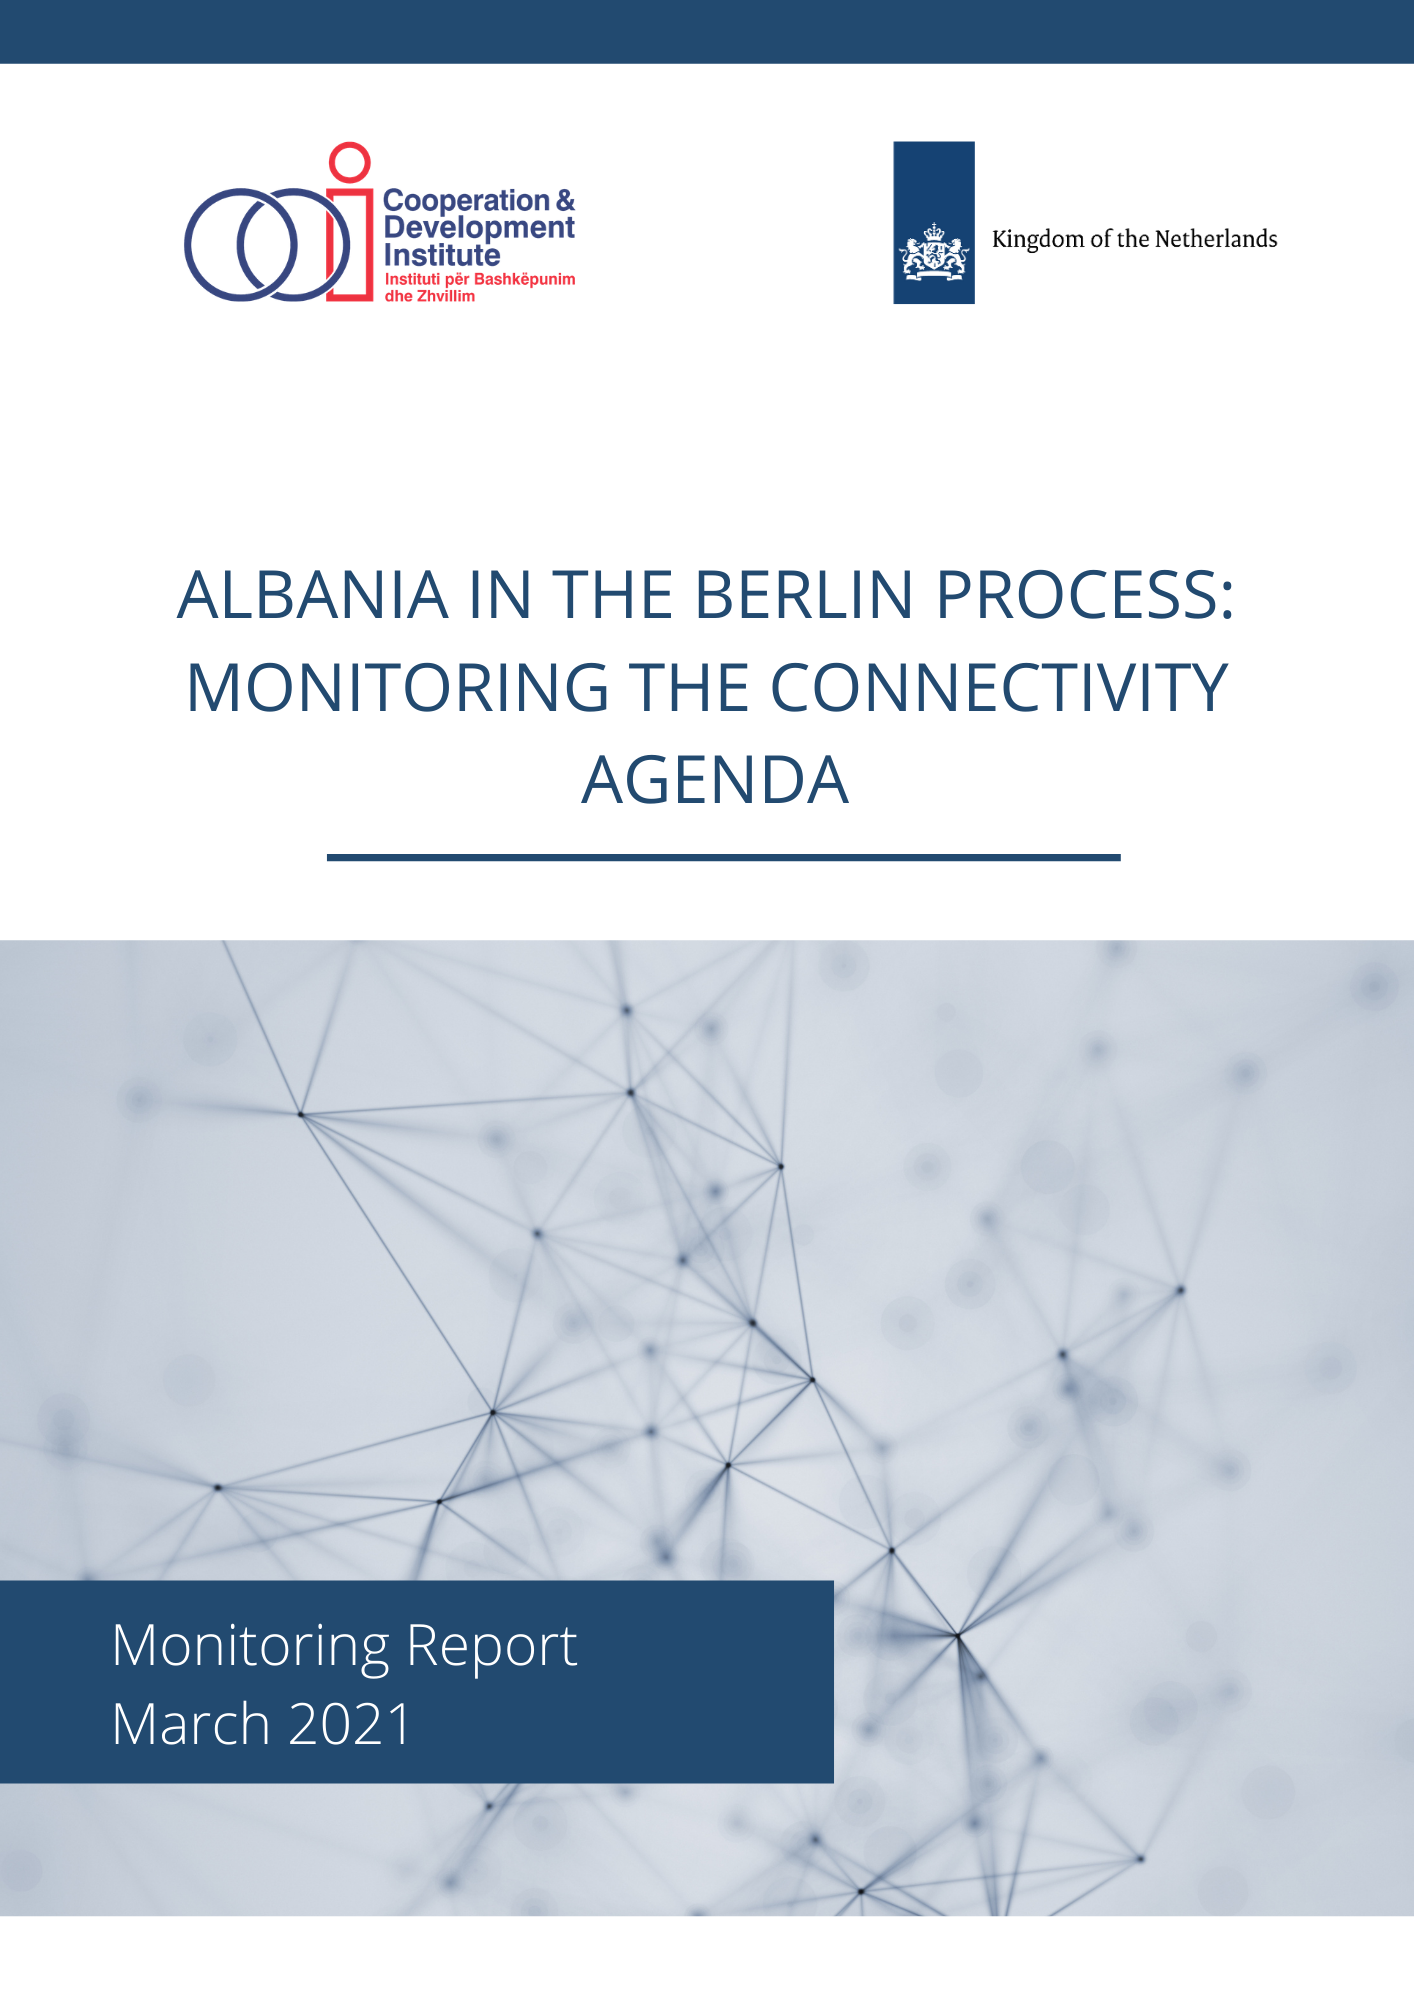 Albania in the Berlin Process: Monitoring the Connectivity Agenda